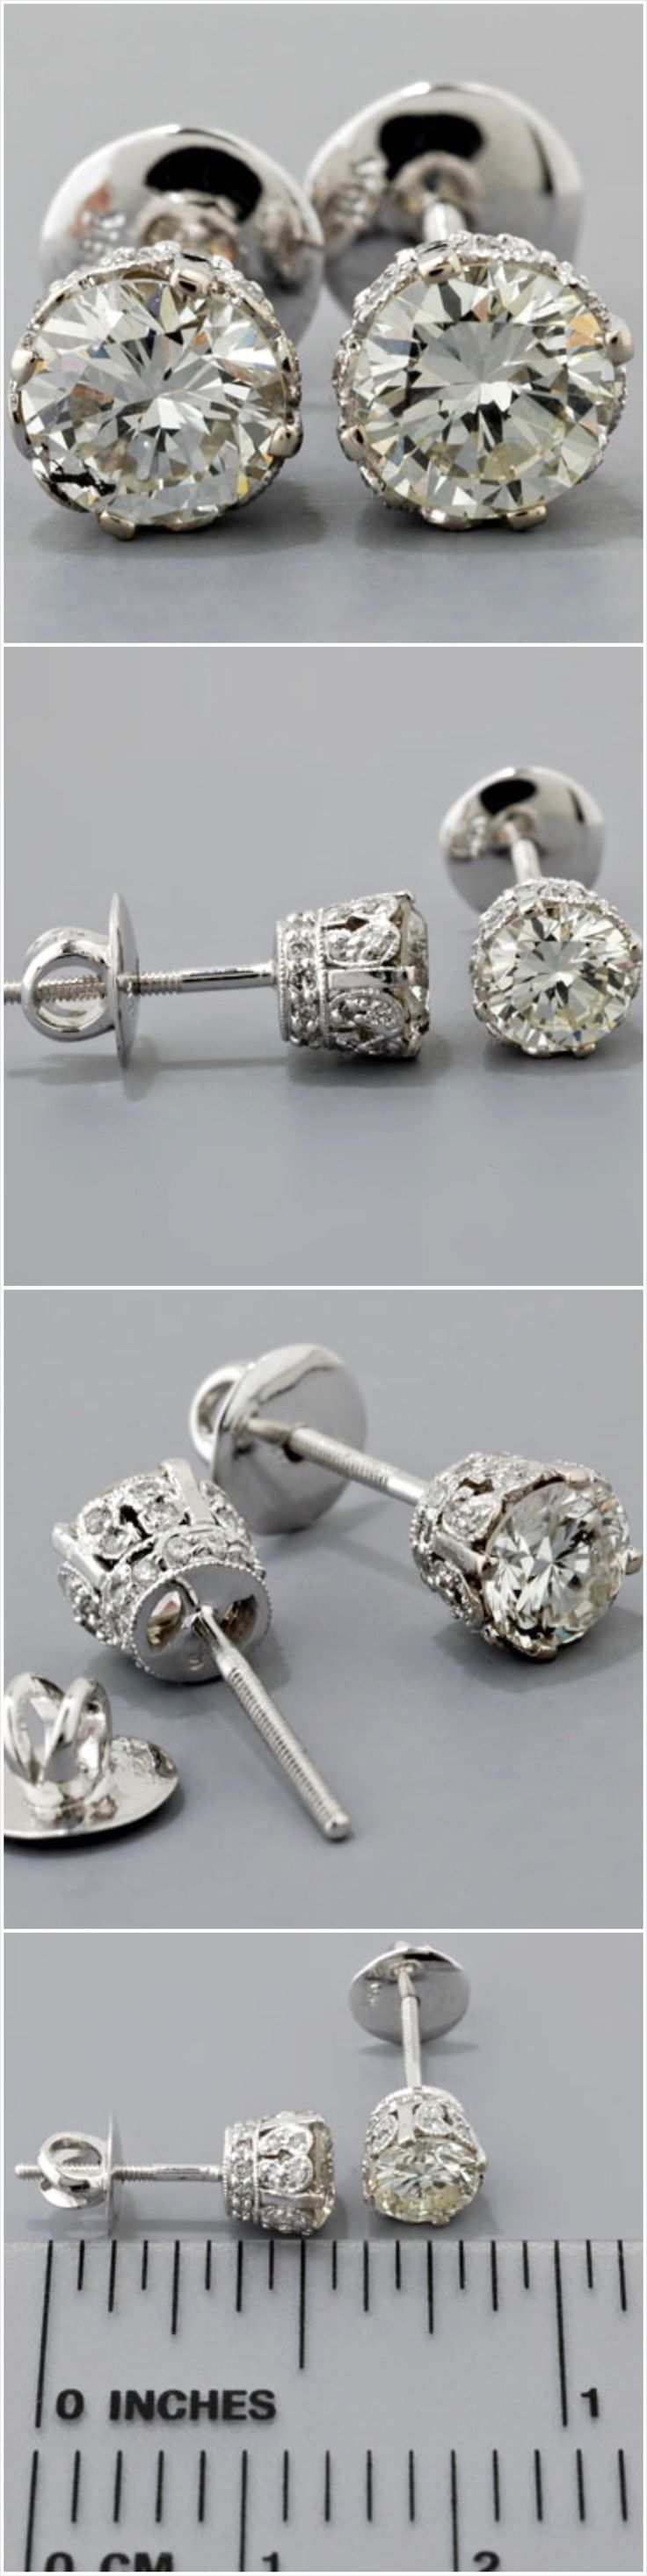 Diamond  Stud Earrings Antique Edwardian Style Gold @ http://www.faycullen.com/products/C130E1D/